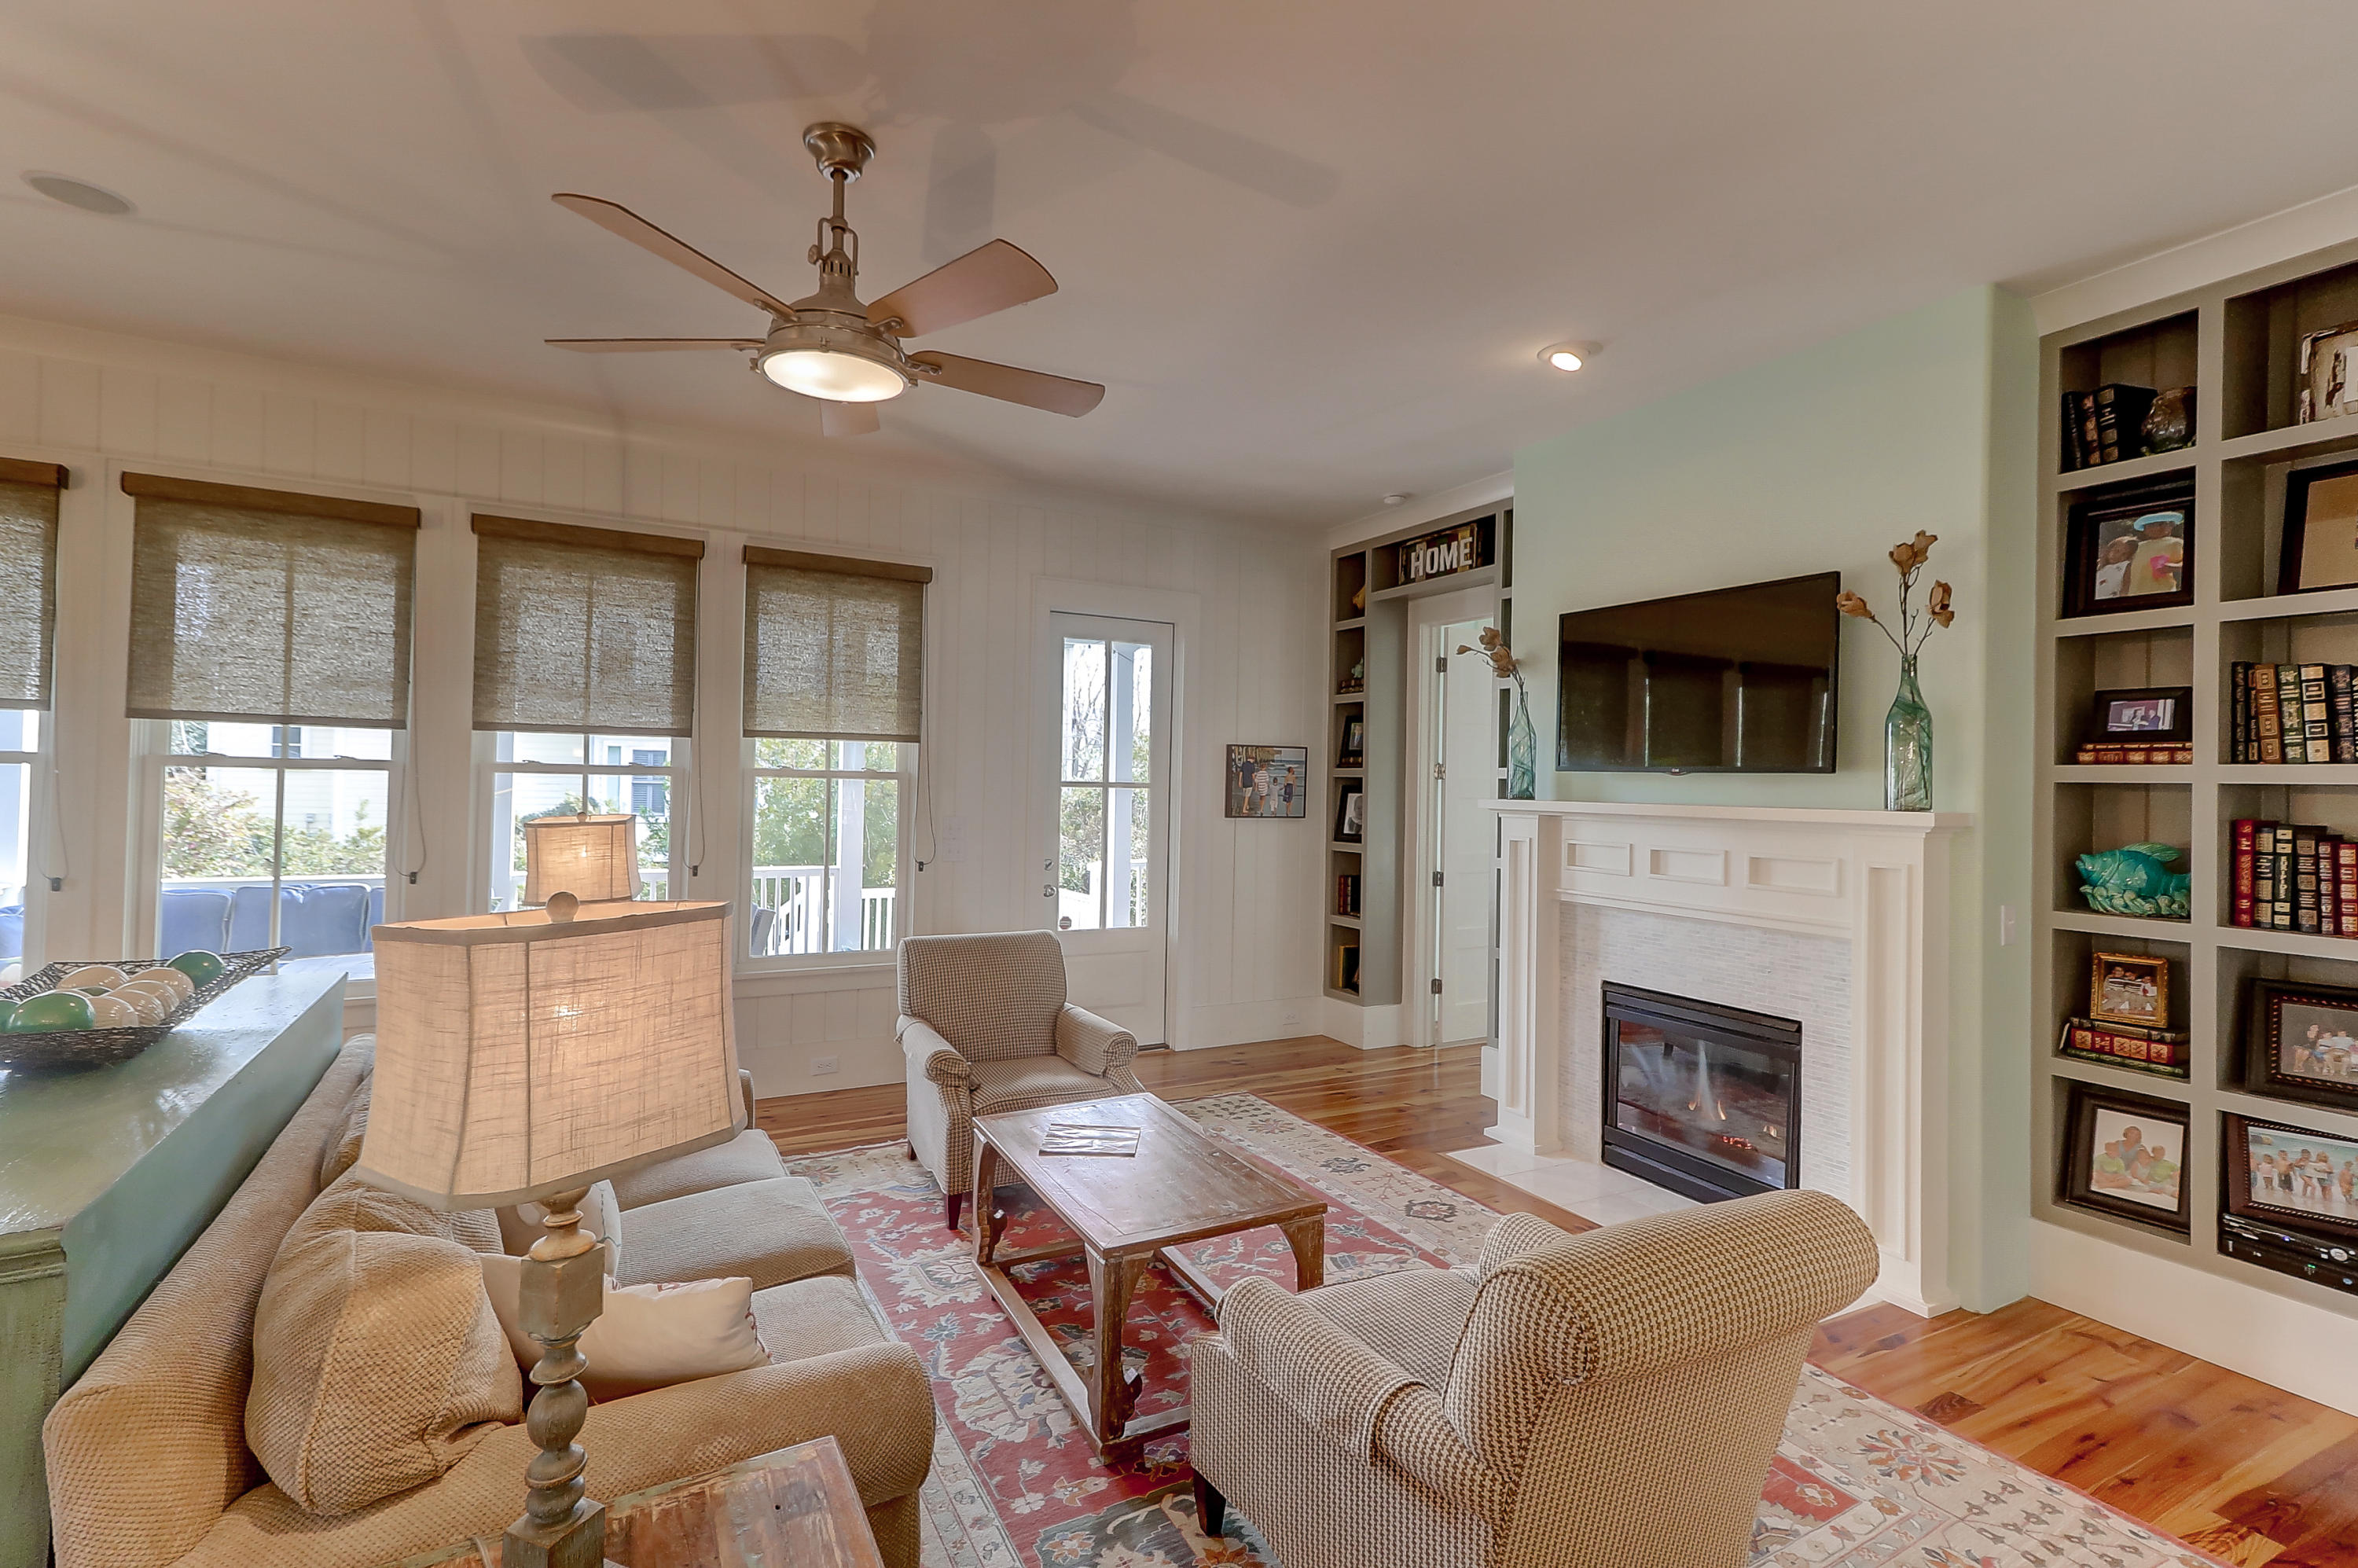 Old Village Landing Homes For Sale - 727 Gate Post, Mount Pleasant, SC - 21